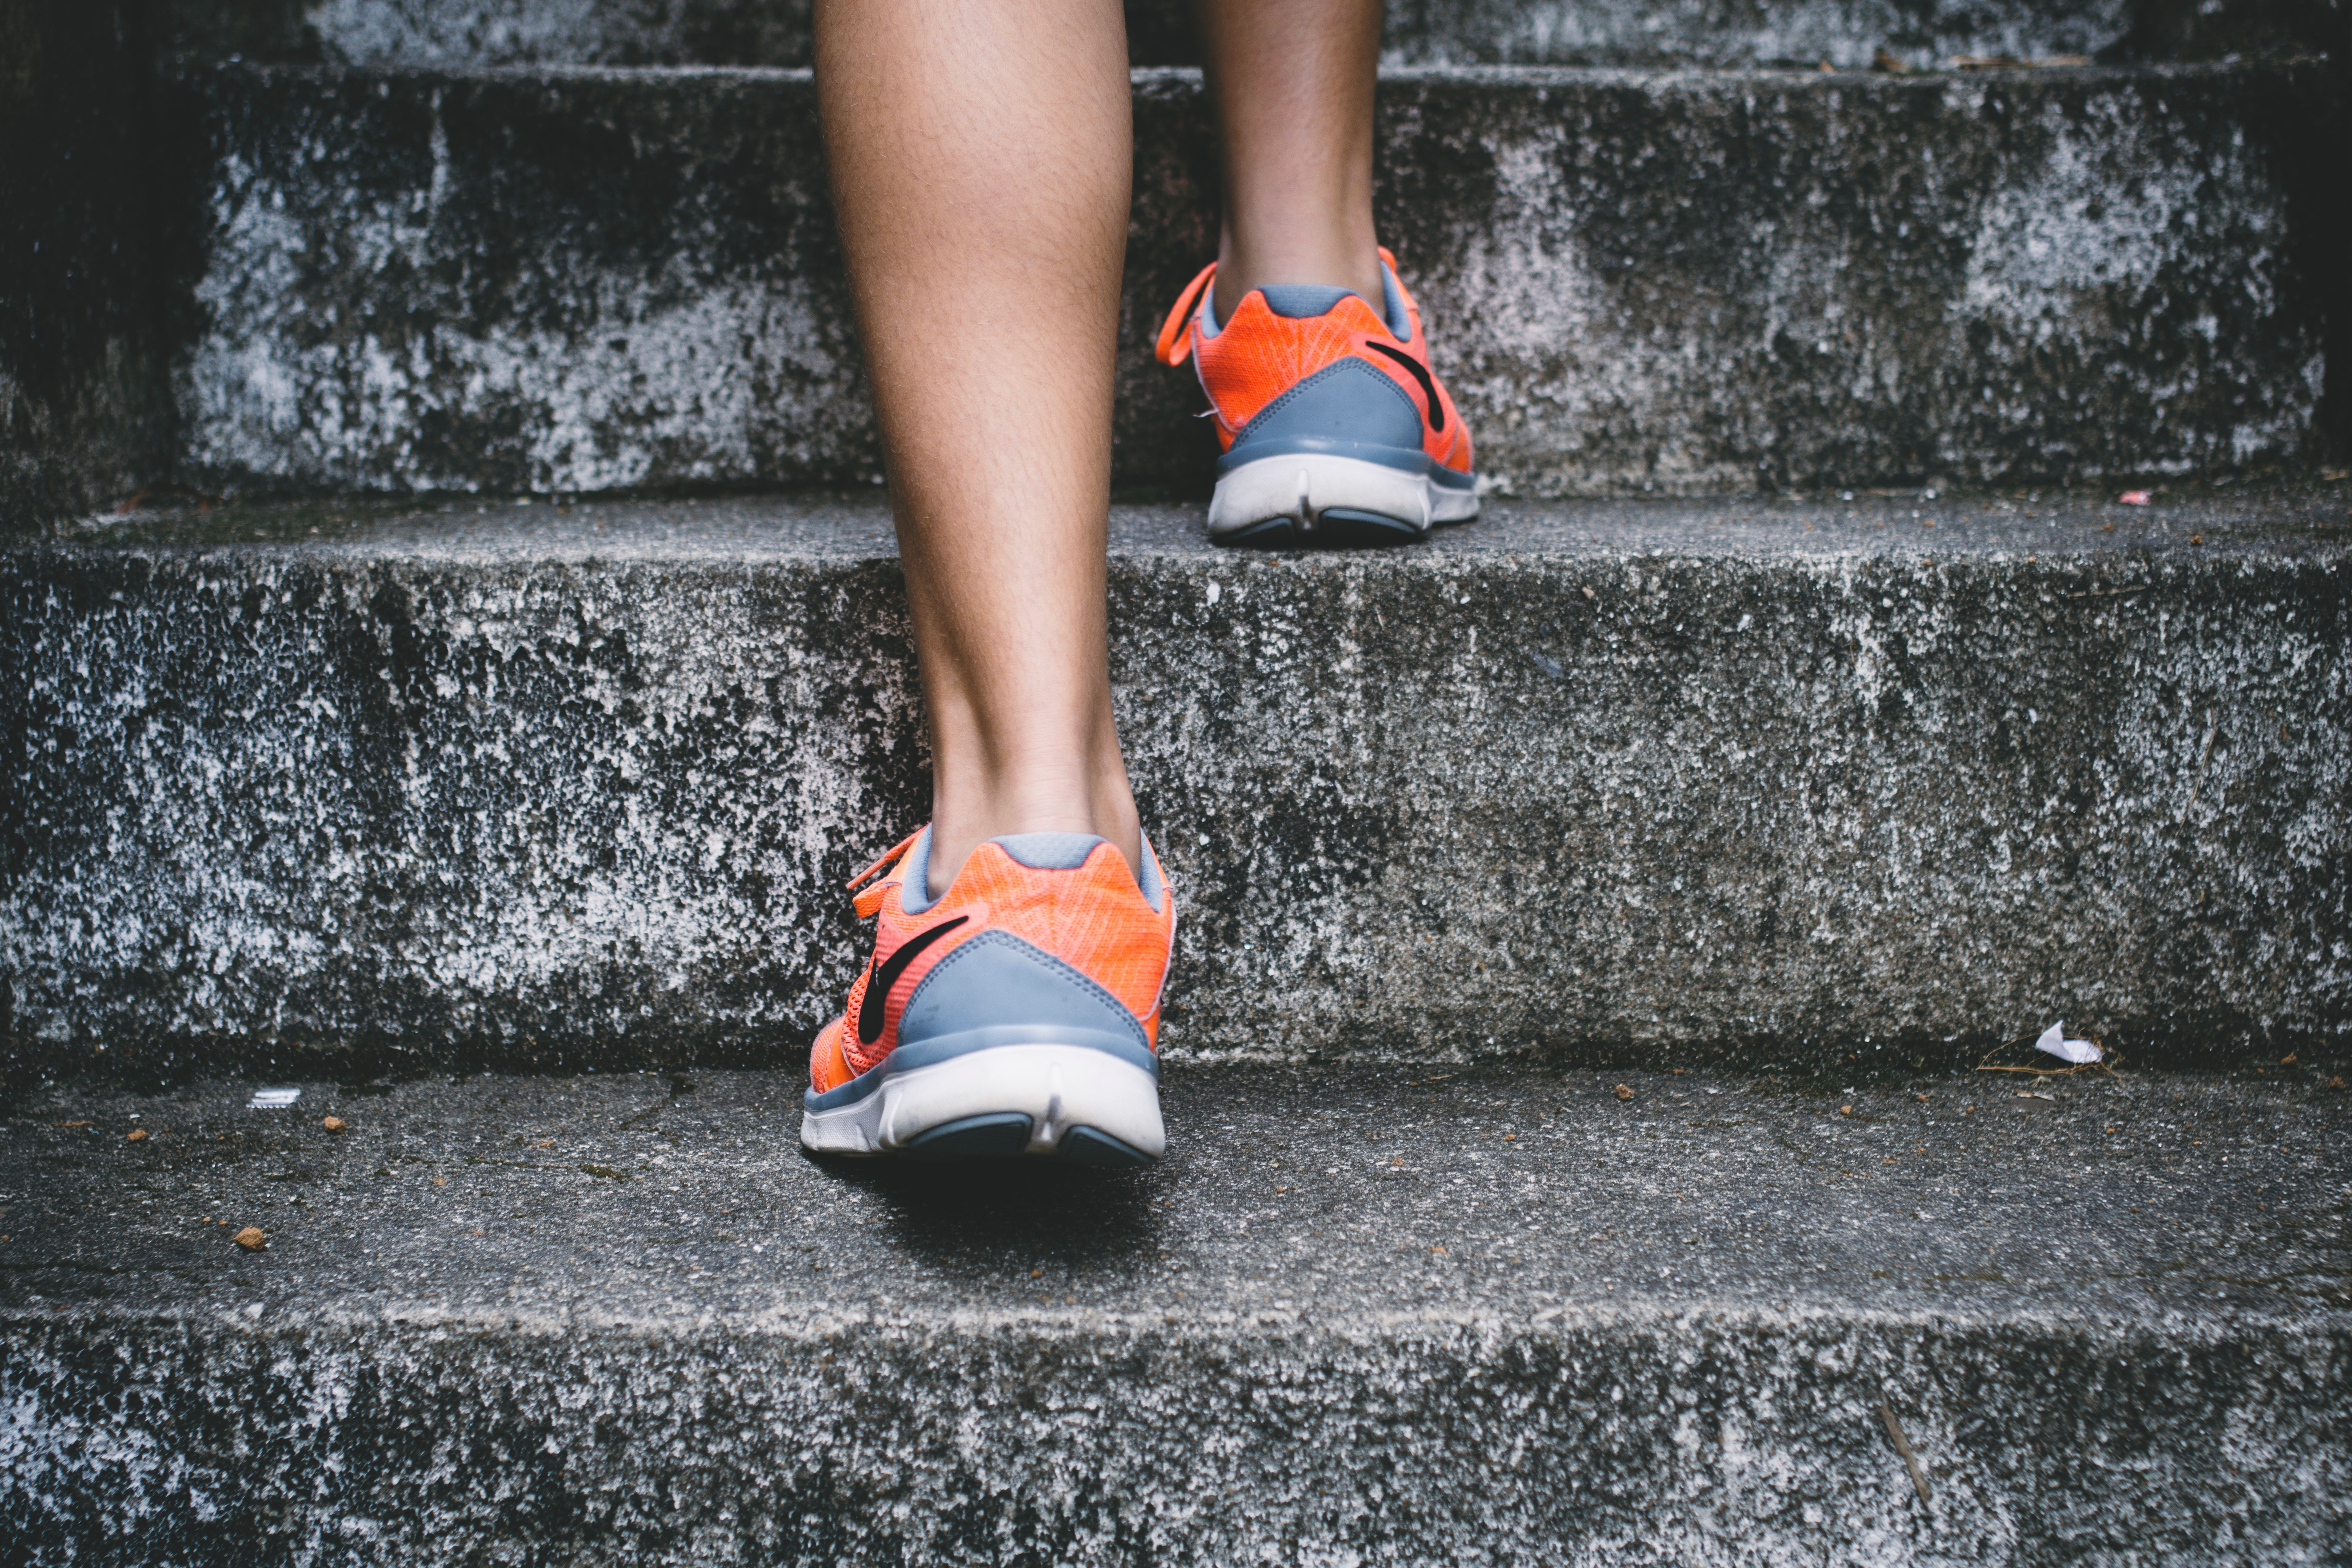 Take every opportunity to exercise. Even opting for the stairs instead of taking the elevator can make a positive impact on health.